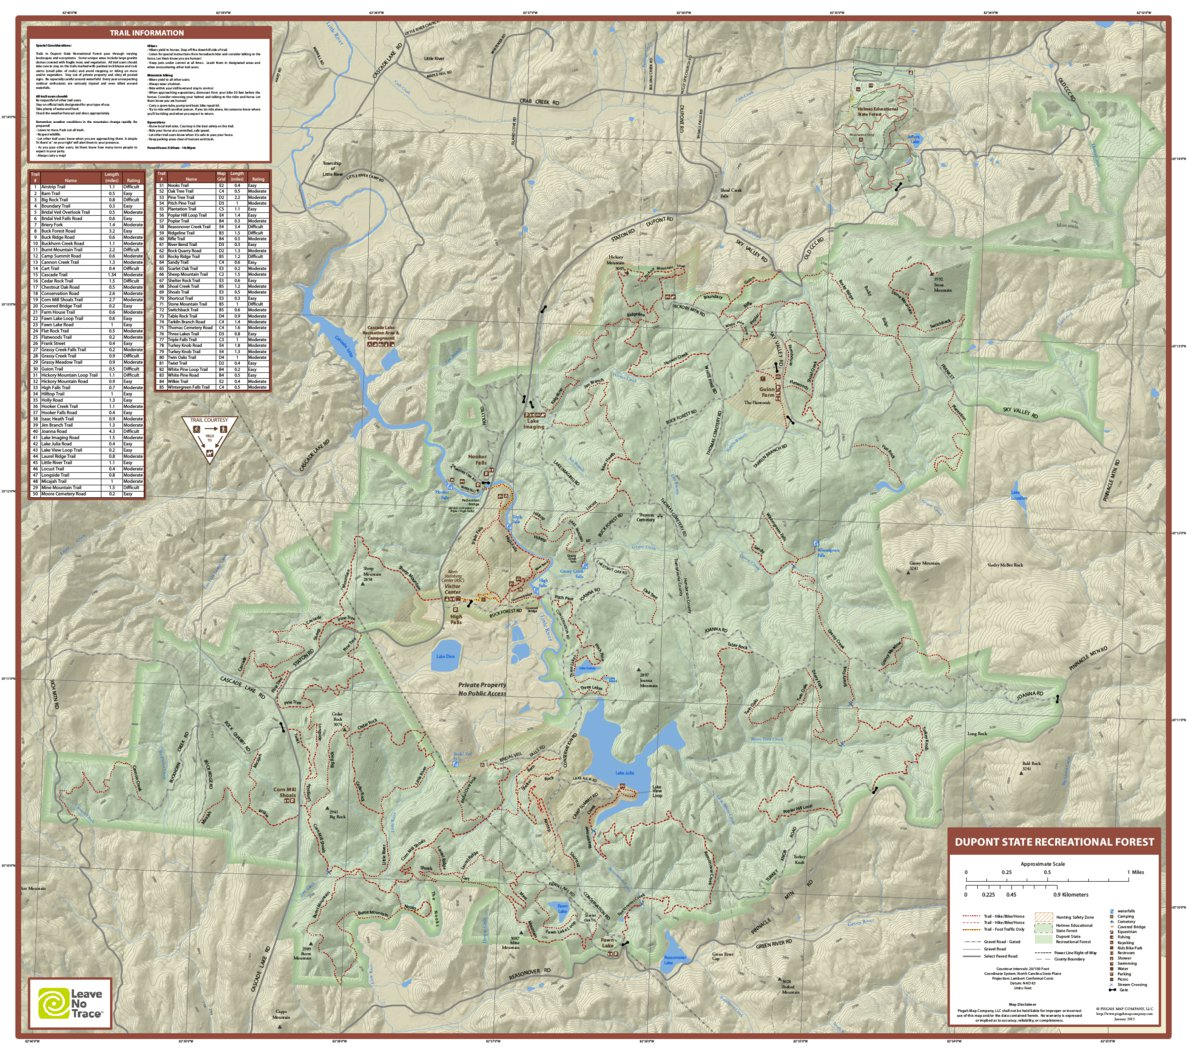 DuPont State Recreational Forest - Pisgah Map Company, LLC - Avenza on